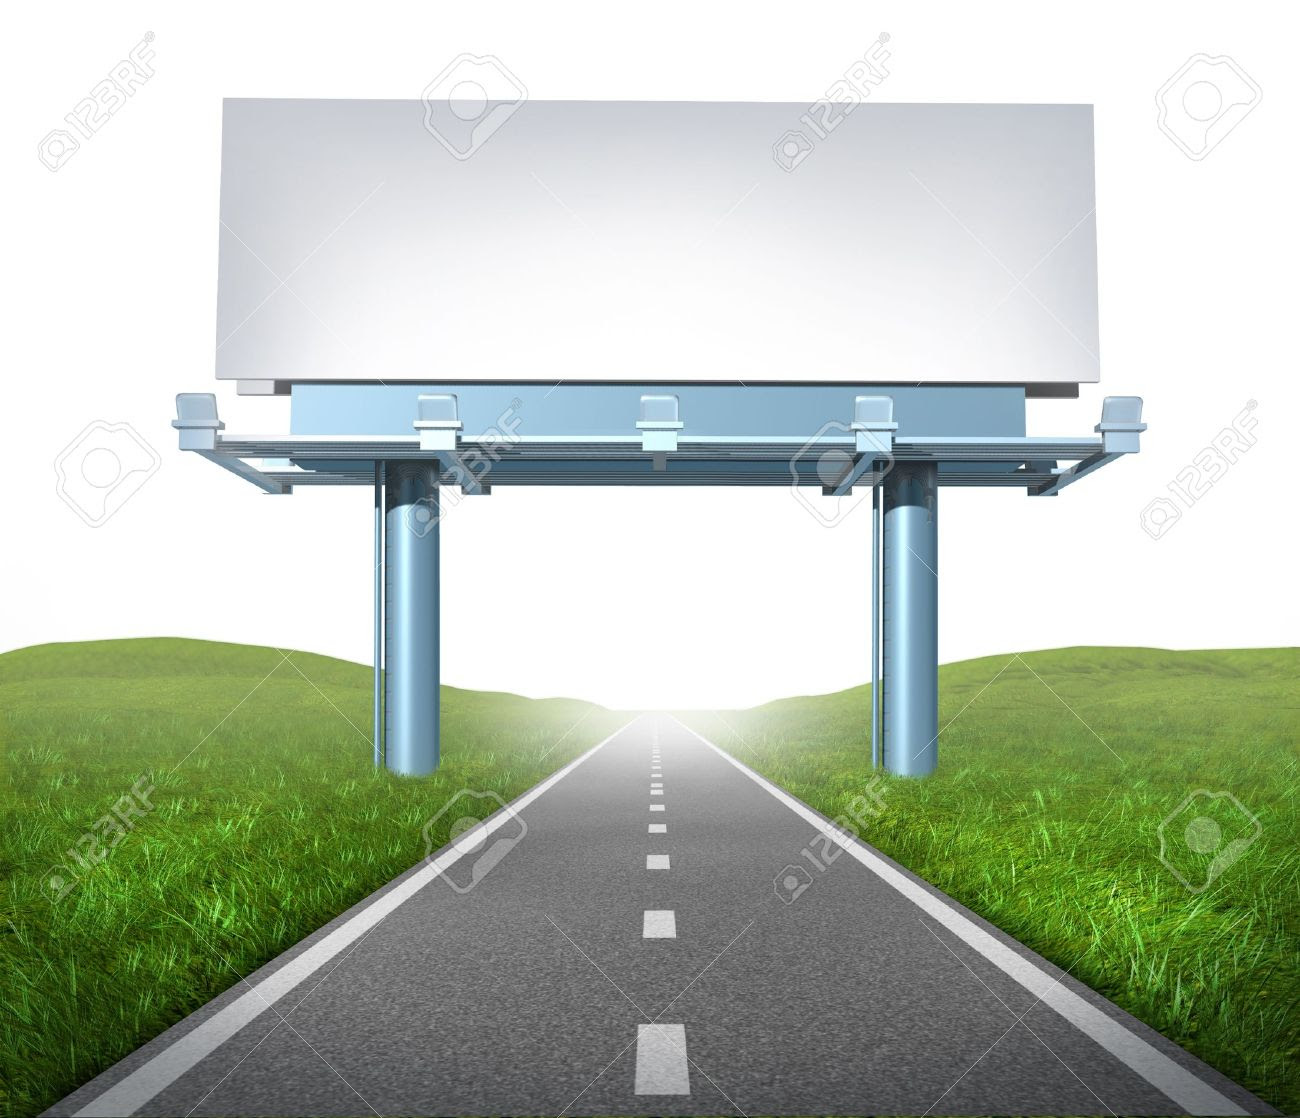 Blank Highway Billboard Sign In An Outdoor Display Showing A ...